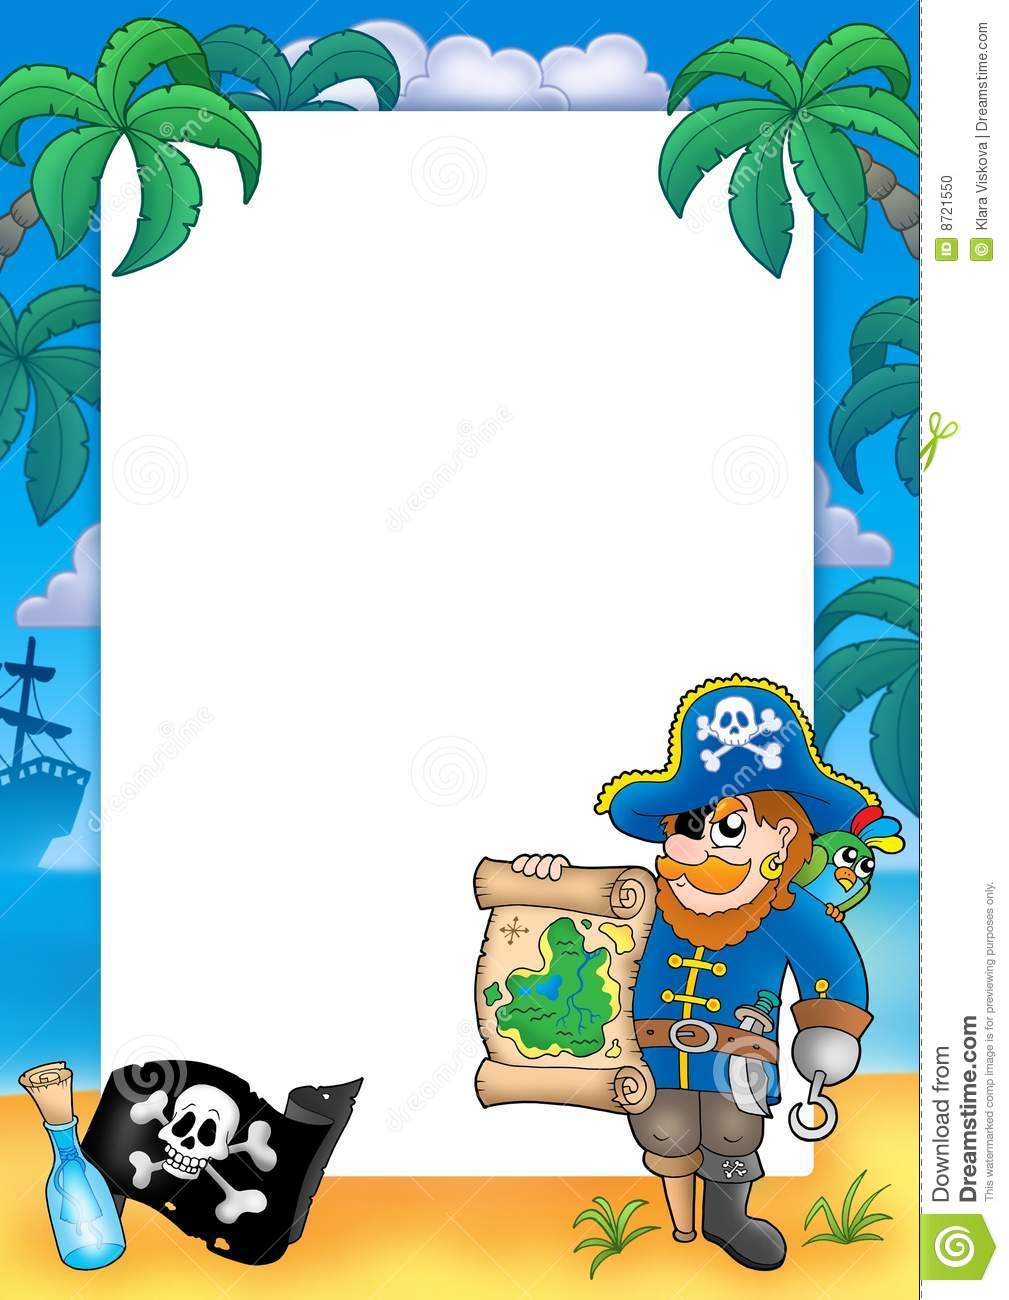 Pirate Frame With Sailboat At Night Royalty-Free Cartoon ...